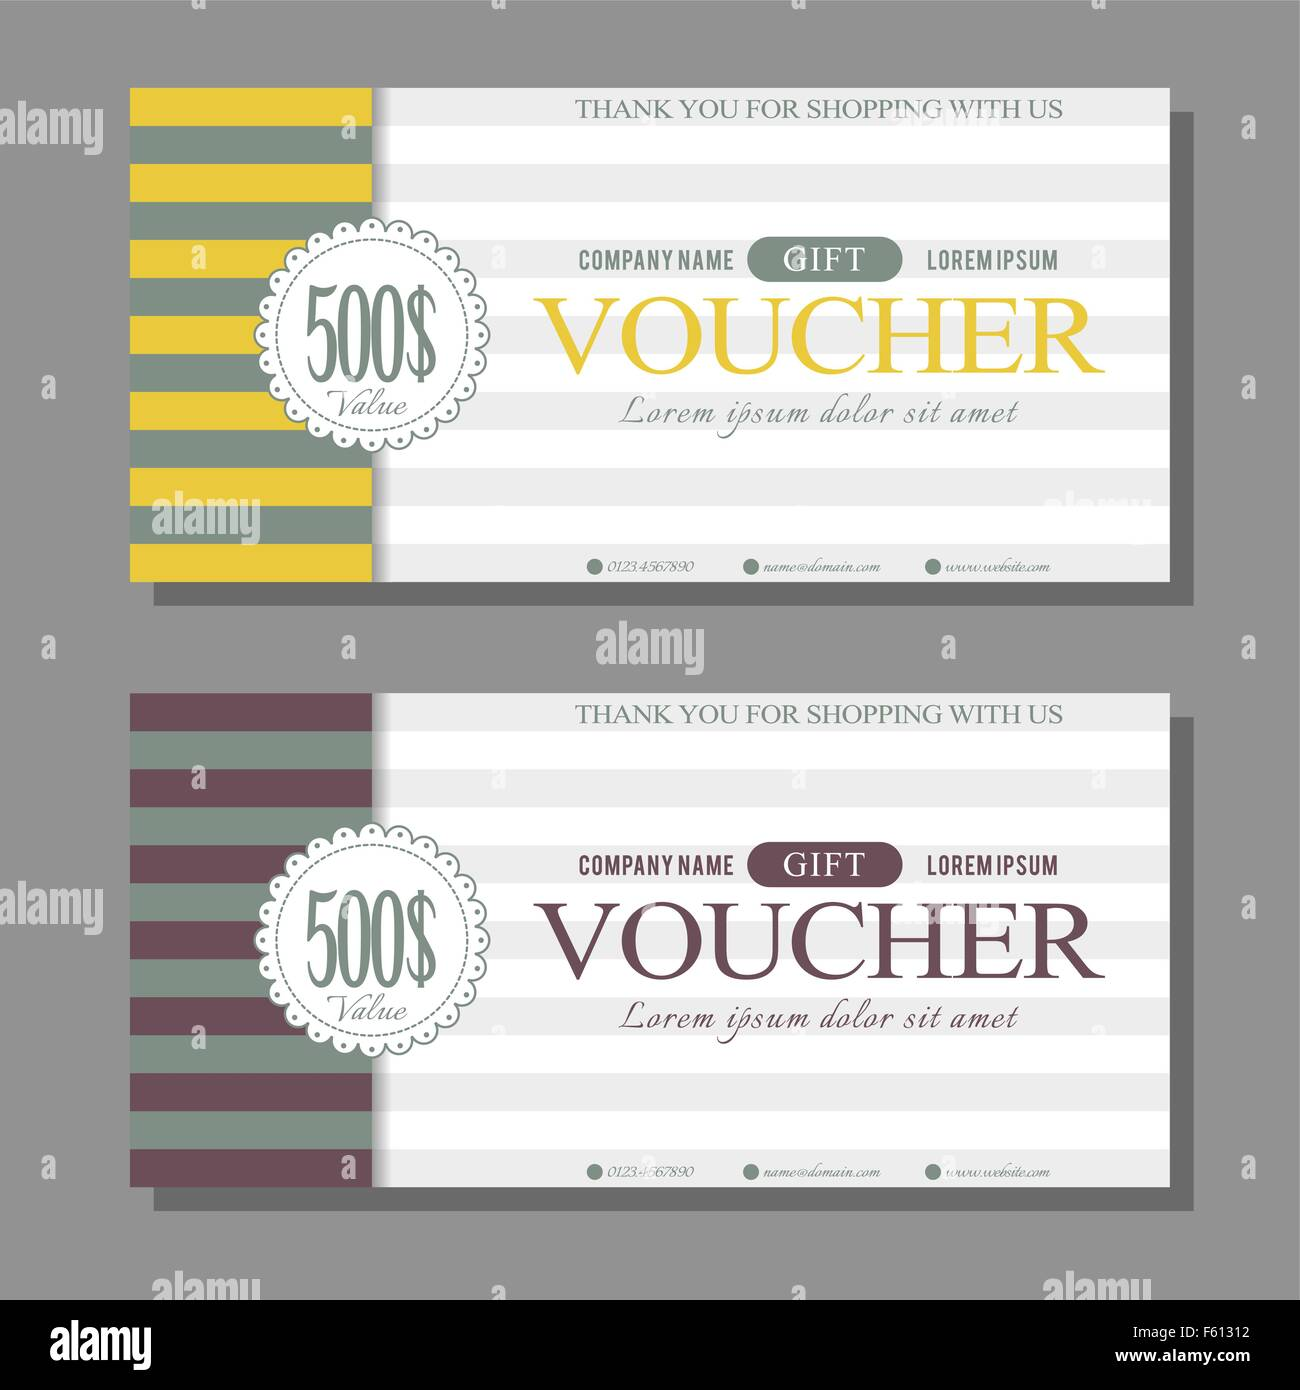 vintage gift voucher template stock photo royalty image stock vector vintage gift voucher template